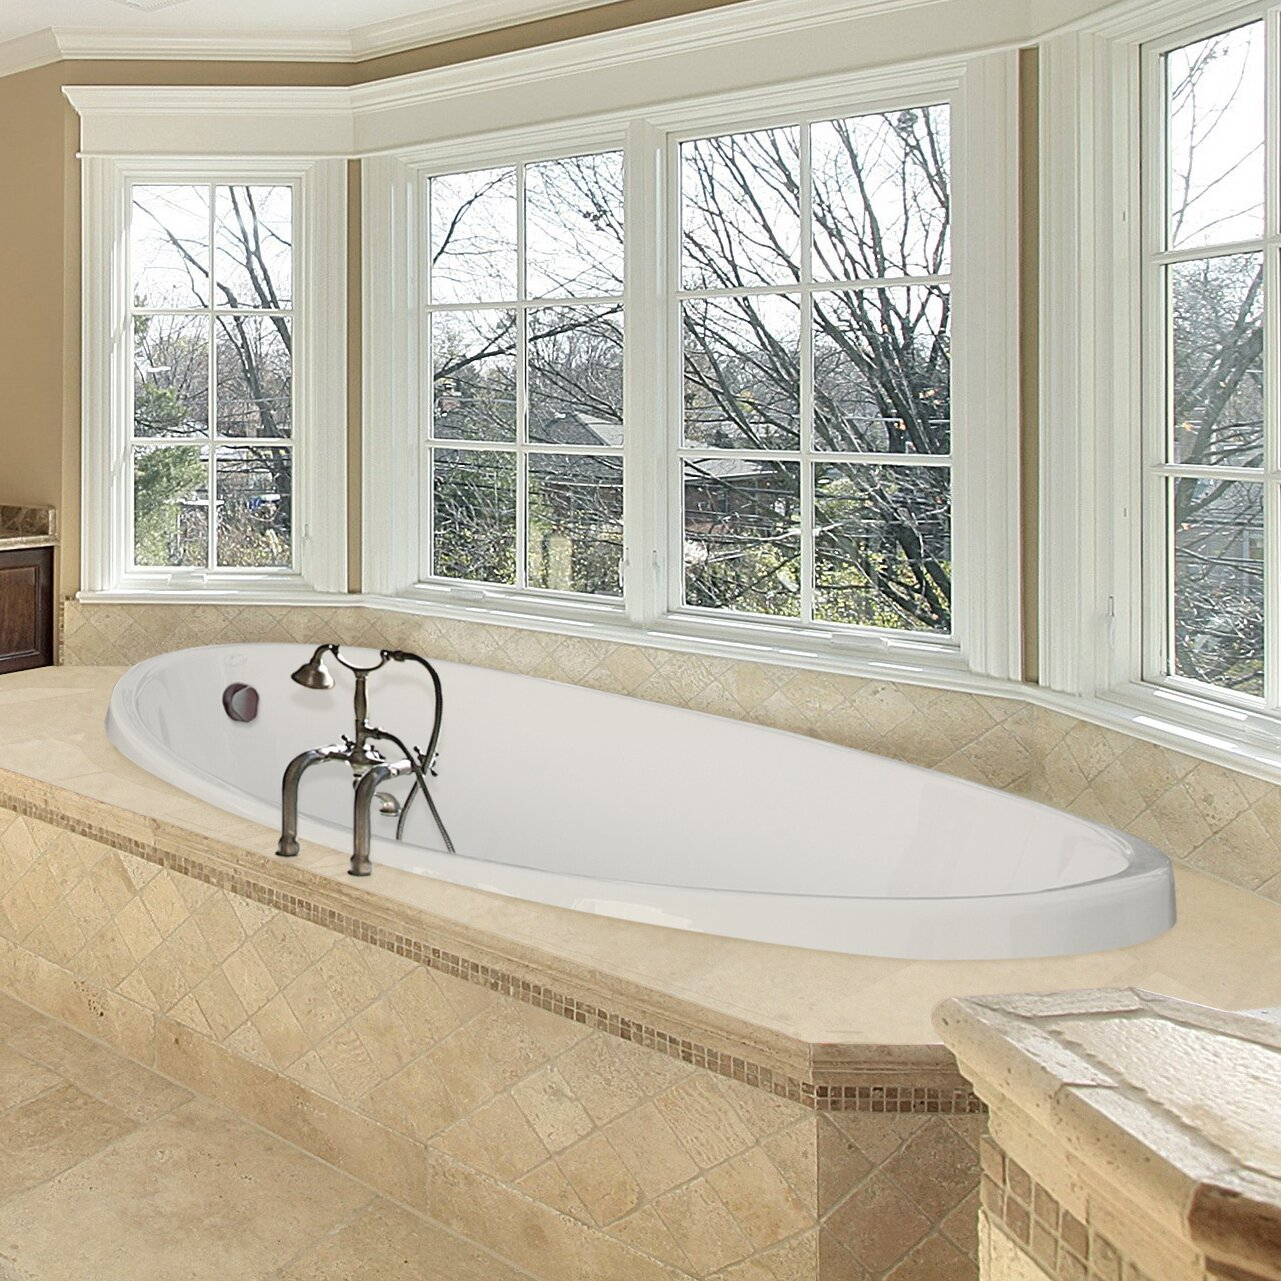 Comfortable Cleaning Bathroom With Bleach And Water Huge Calming Bathroom Paint Colors Square Bathroom Rentals Cost Heated Tile Floor Bathroom Cost Youthful Bathrooms With Showers And Tubs GrayDesign Elements Bathroom Vanities 60 X 36 Bathtub For Kids   Osbdata